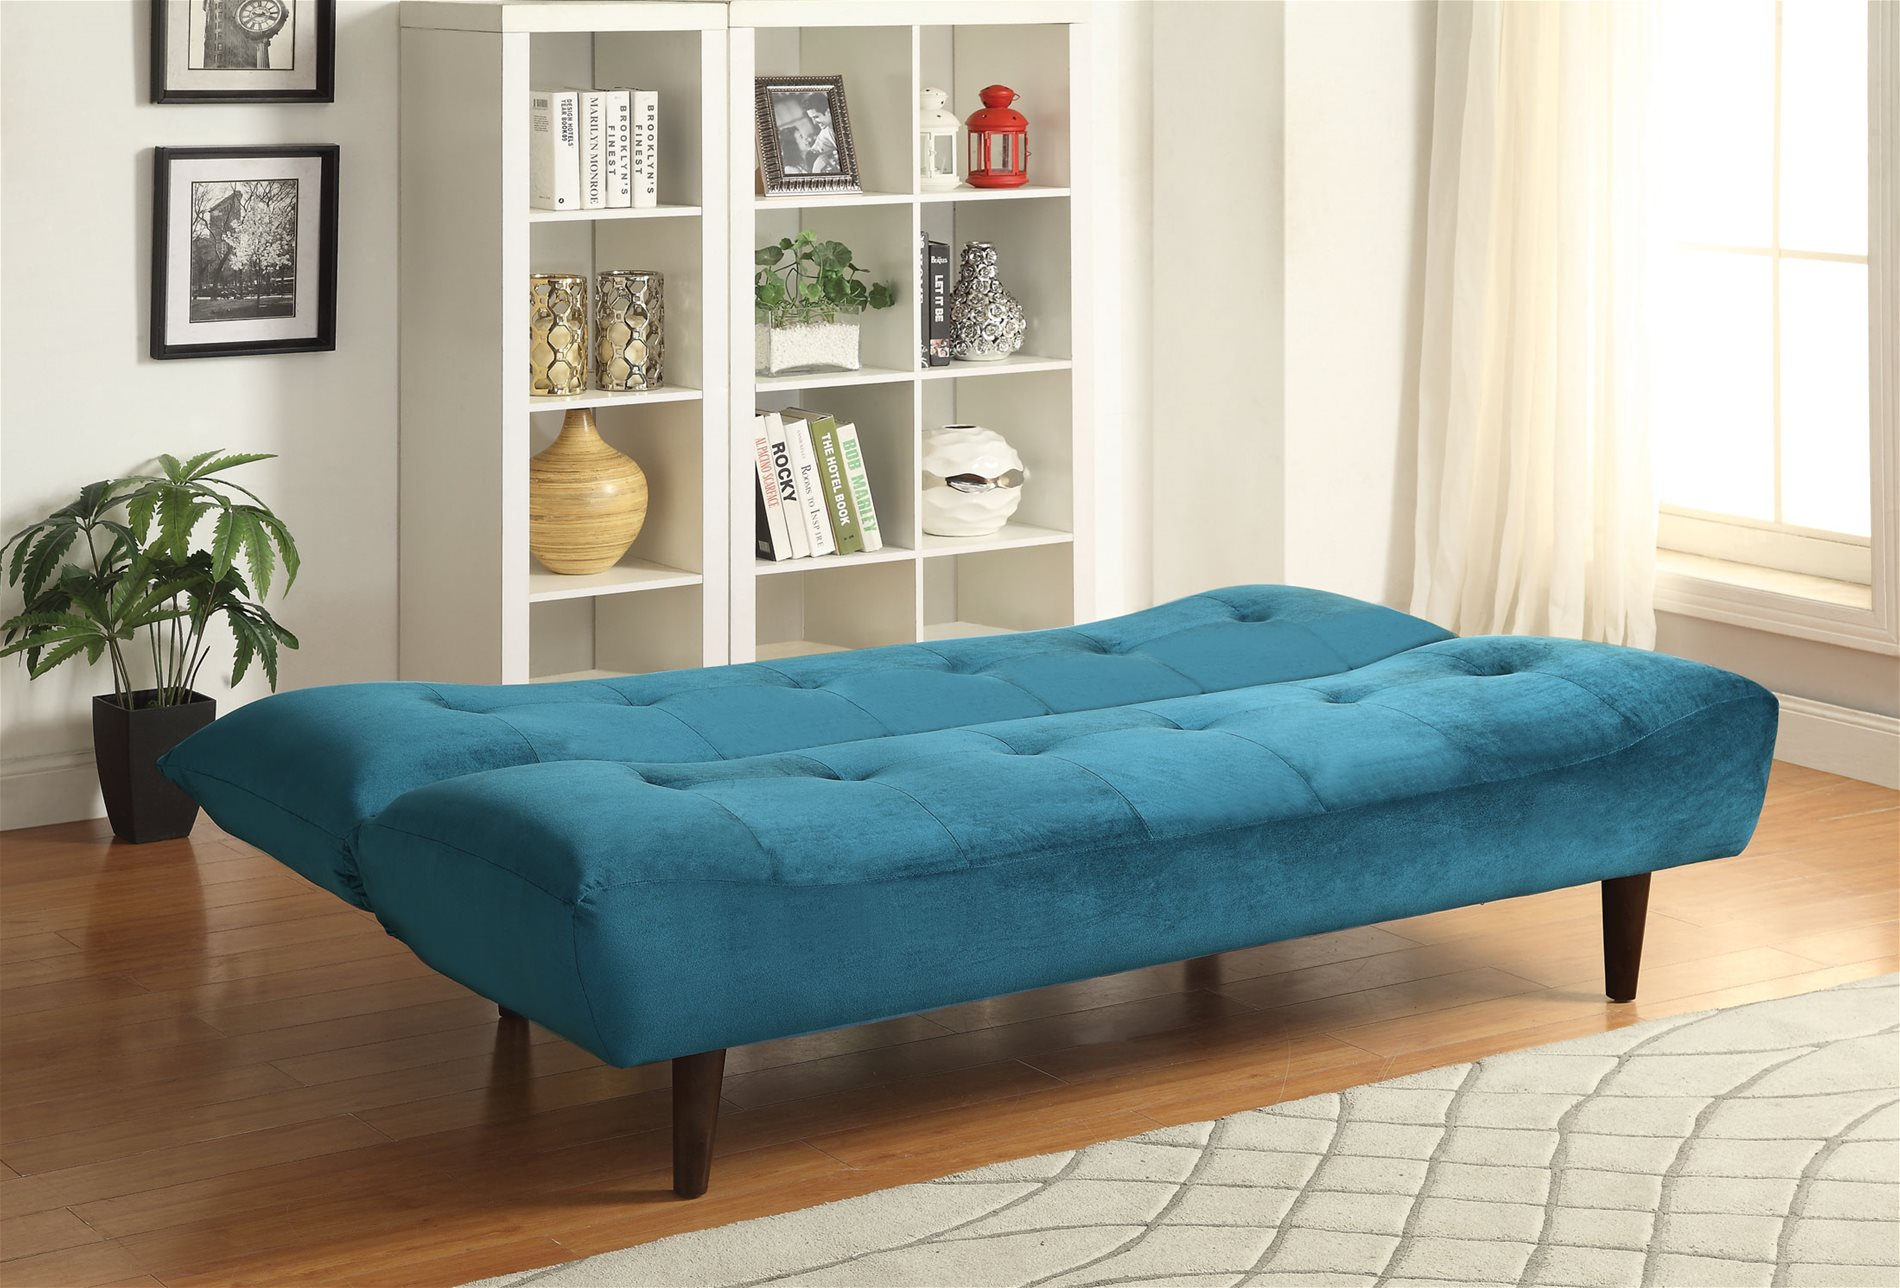 cheap teal sofas most comfortable sofa bed or futon coaster home 500098 velvet with solid wood